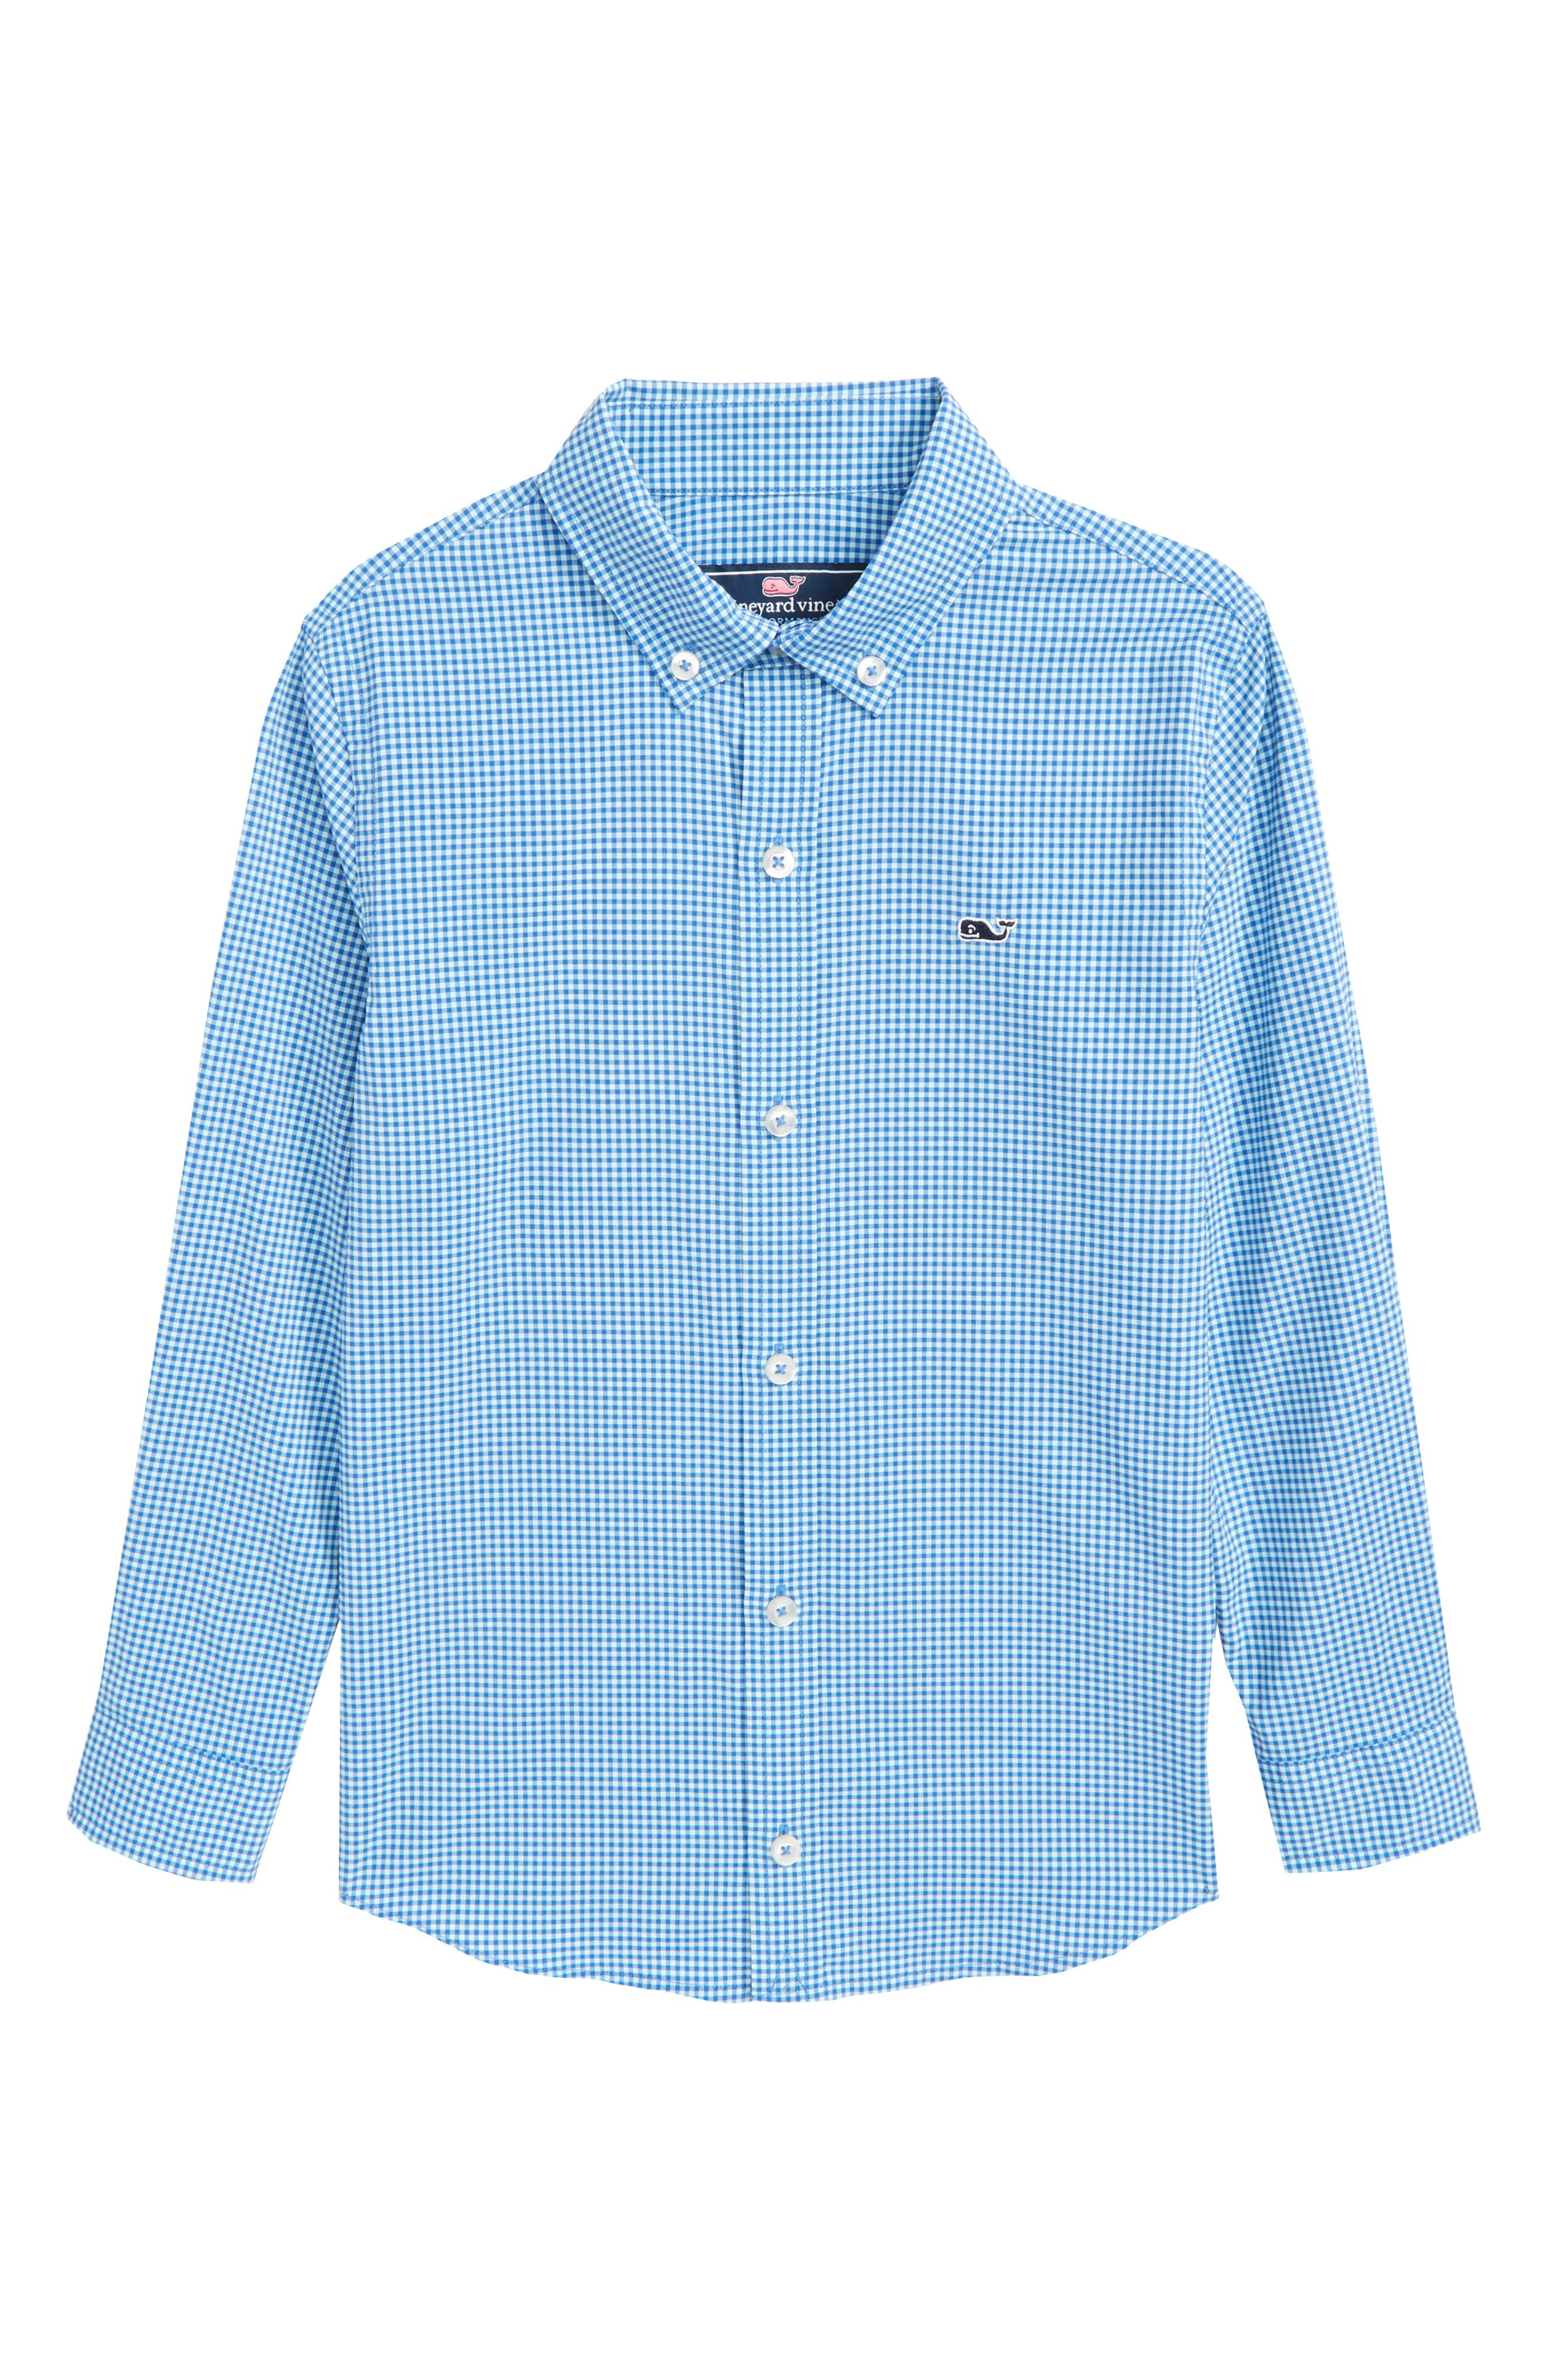 Marina Gingham Check Whale Shirt,                         Main,                         color, Clearwater